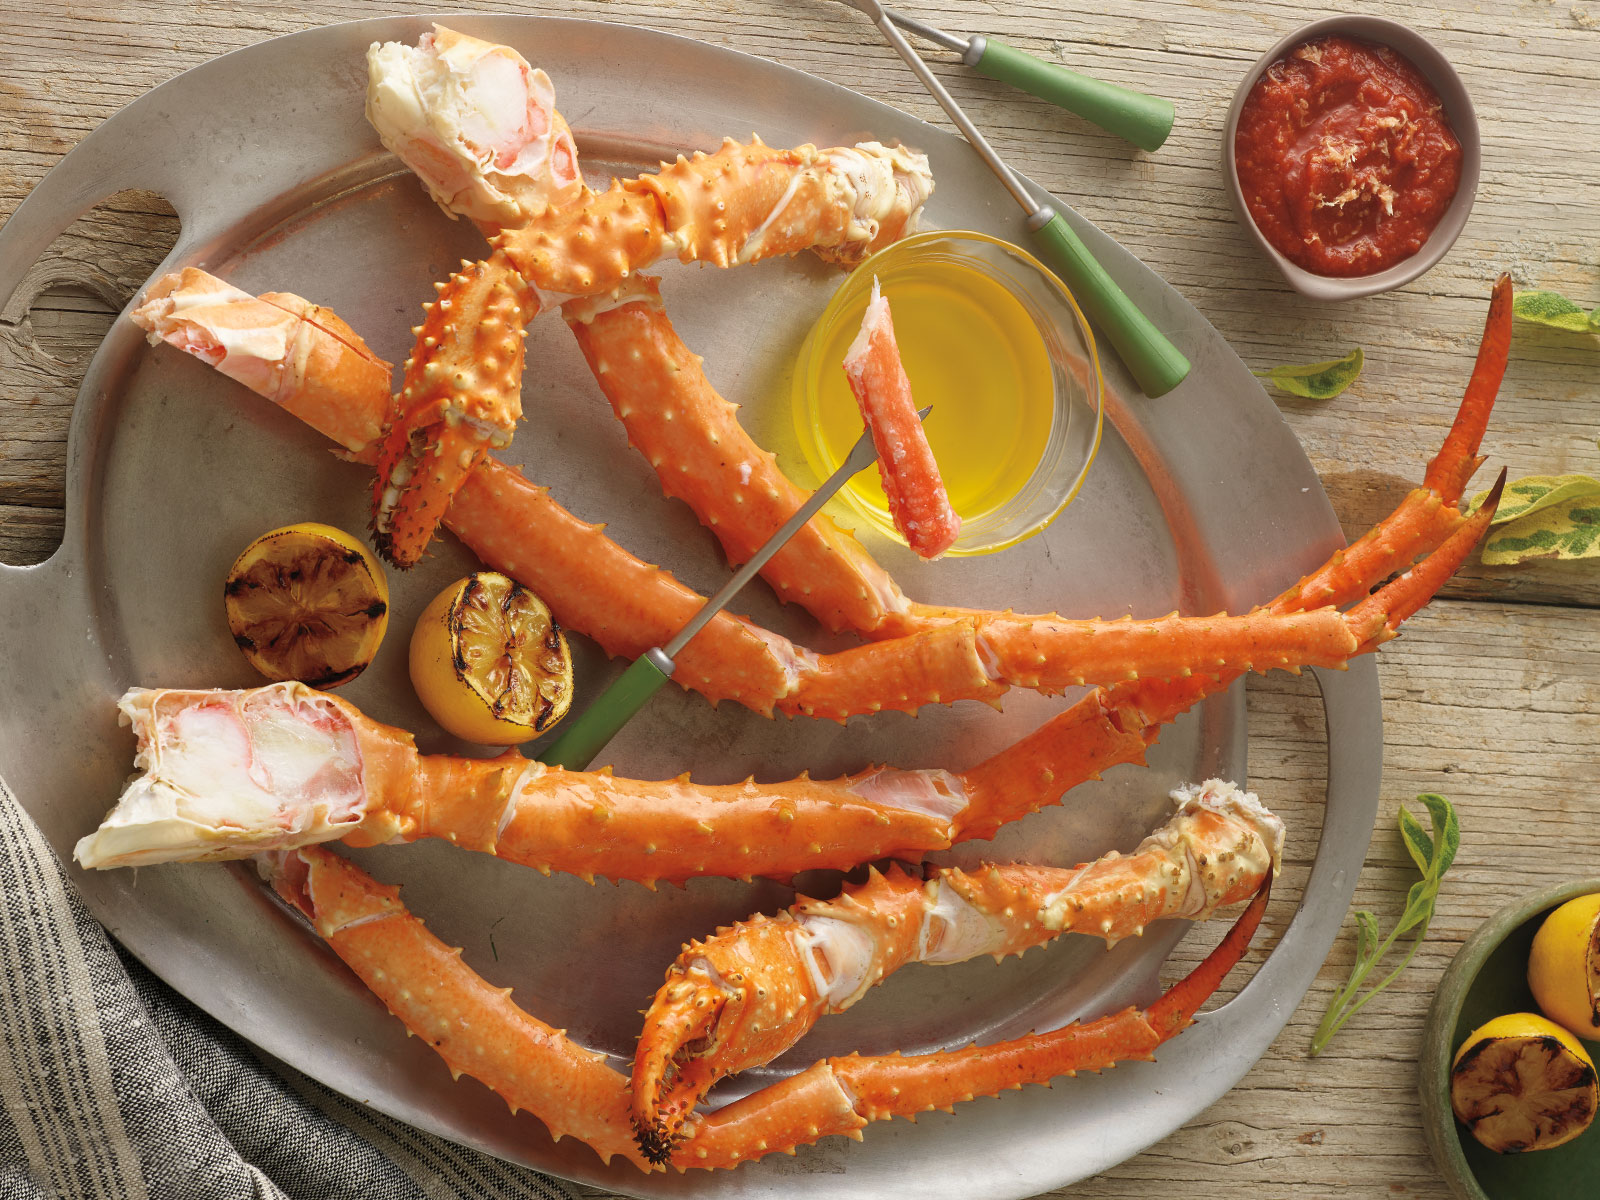 Golden King Crab Legs & Claws 9-12 Count 477826